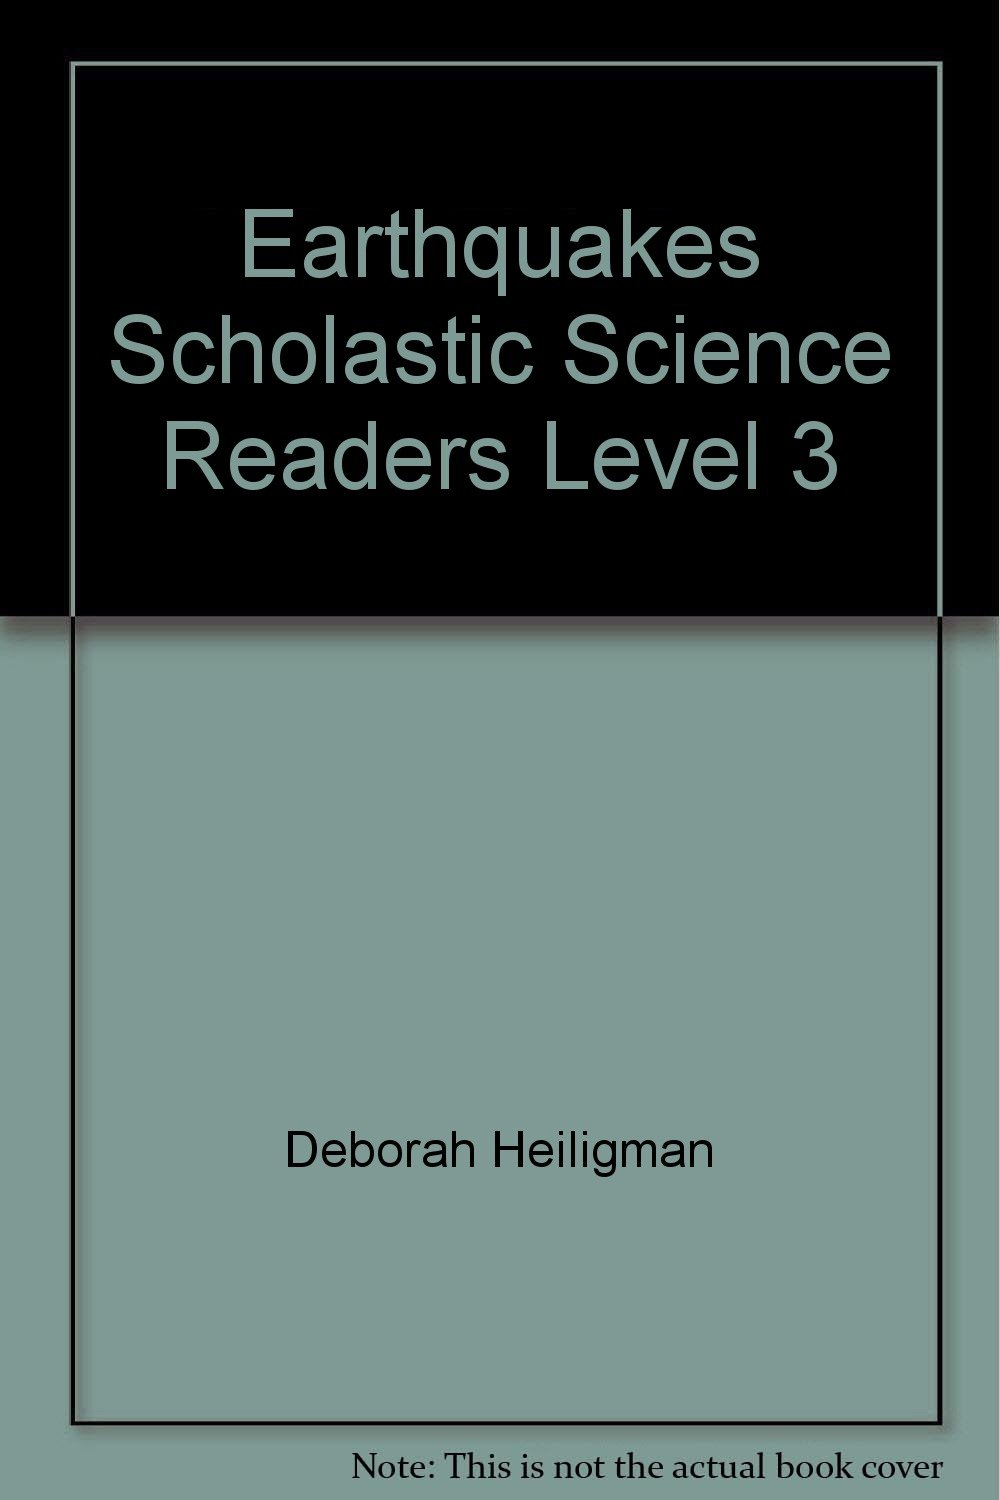 Earthquakes Scholastic Science Readers Level 3 ebook